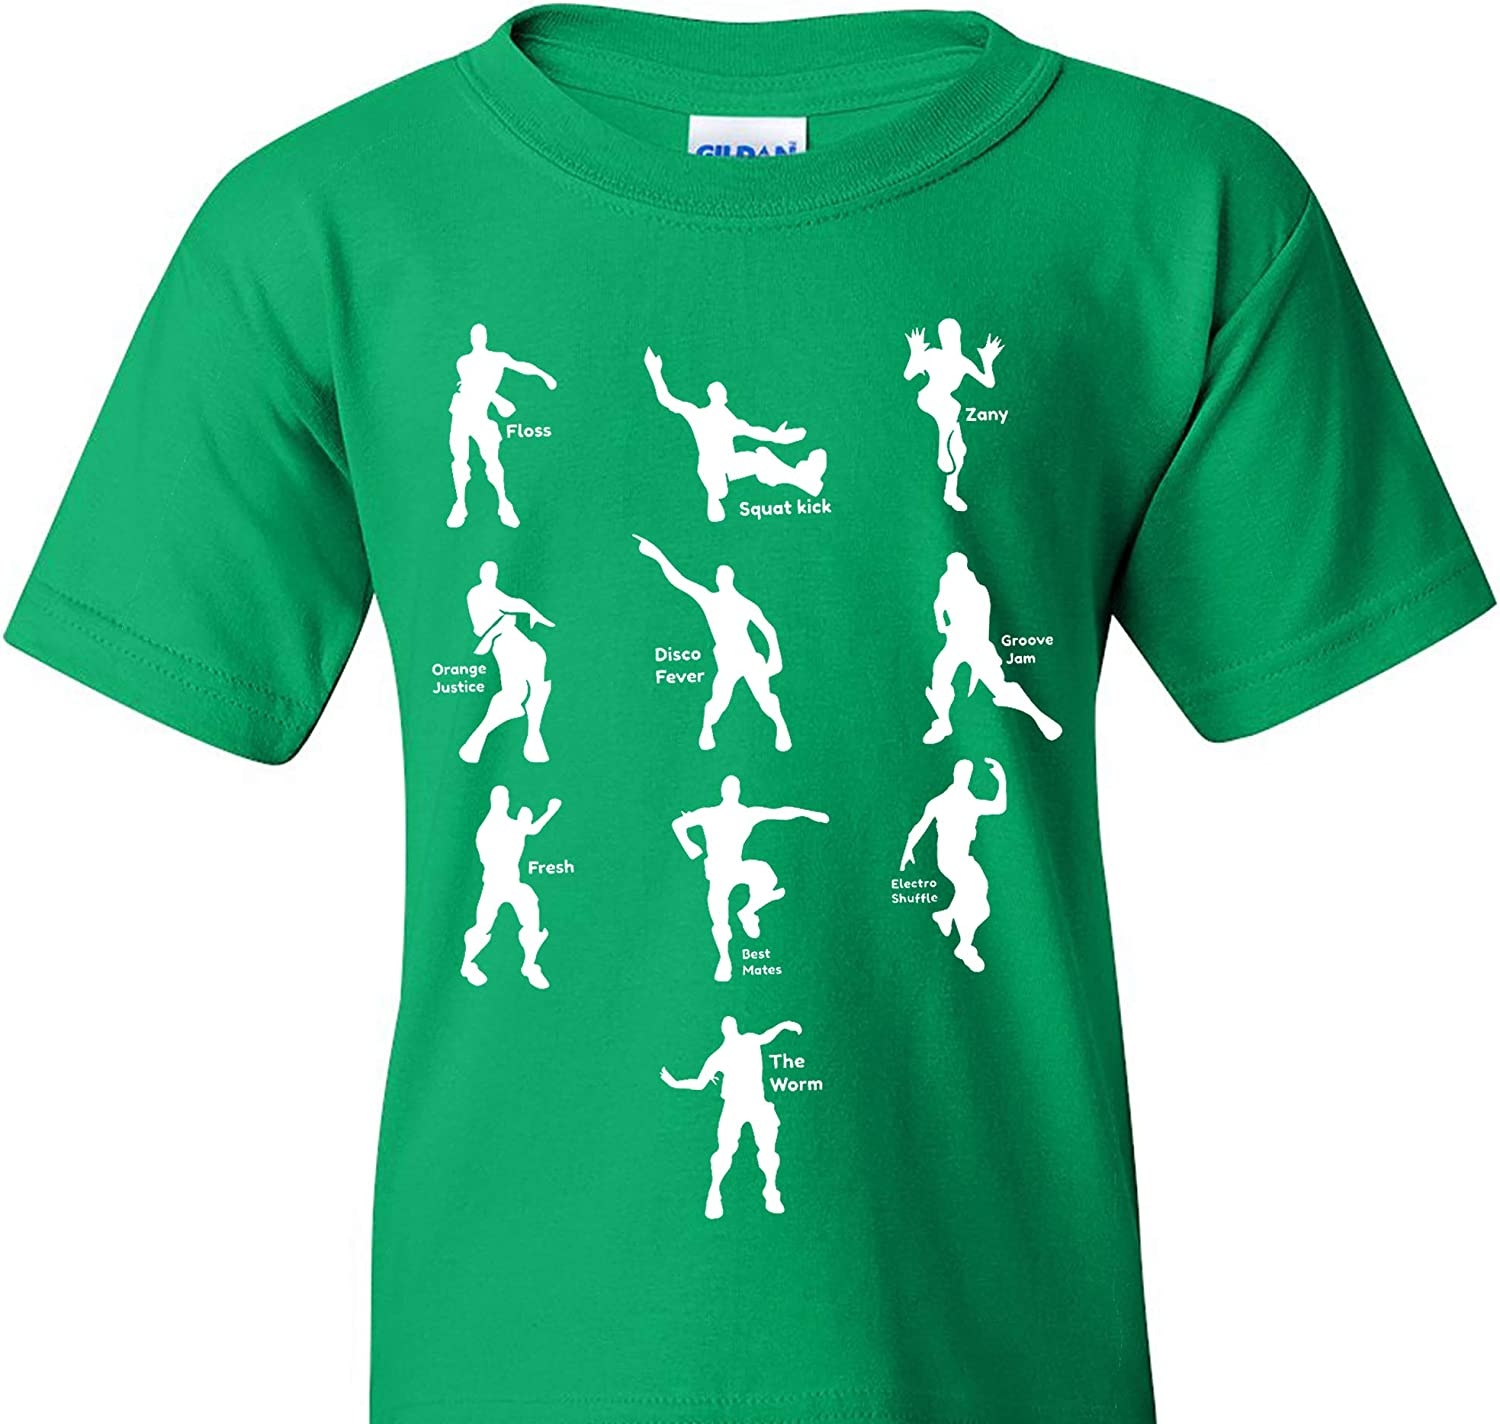 UGP Campus Apparel Emote Max 51% OFF Dances Funny T quality assurance Youth - Shirt